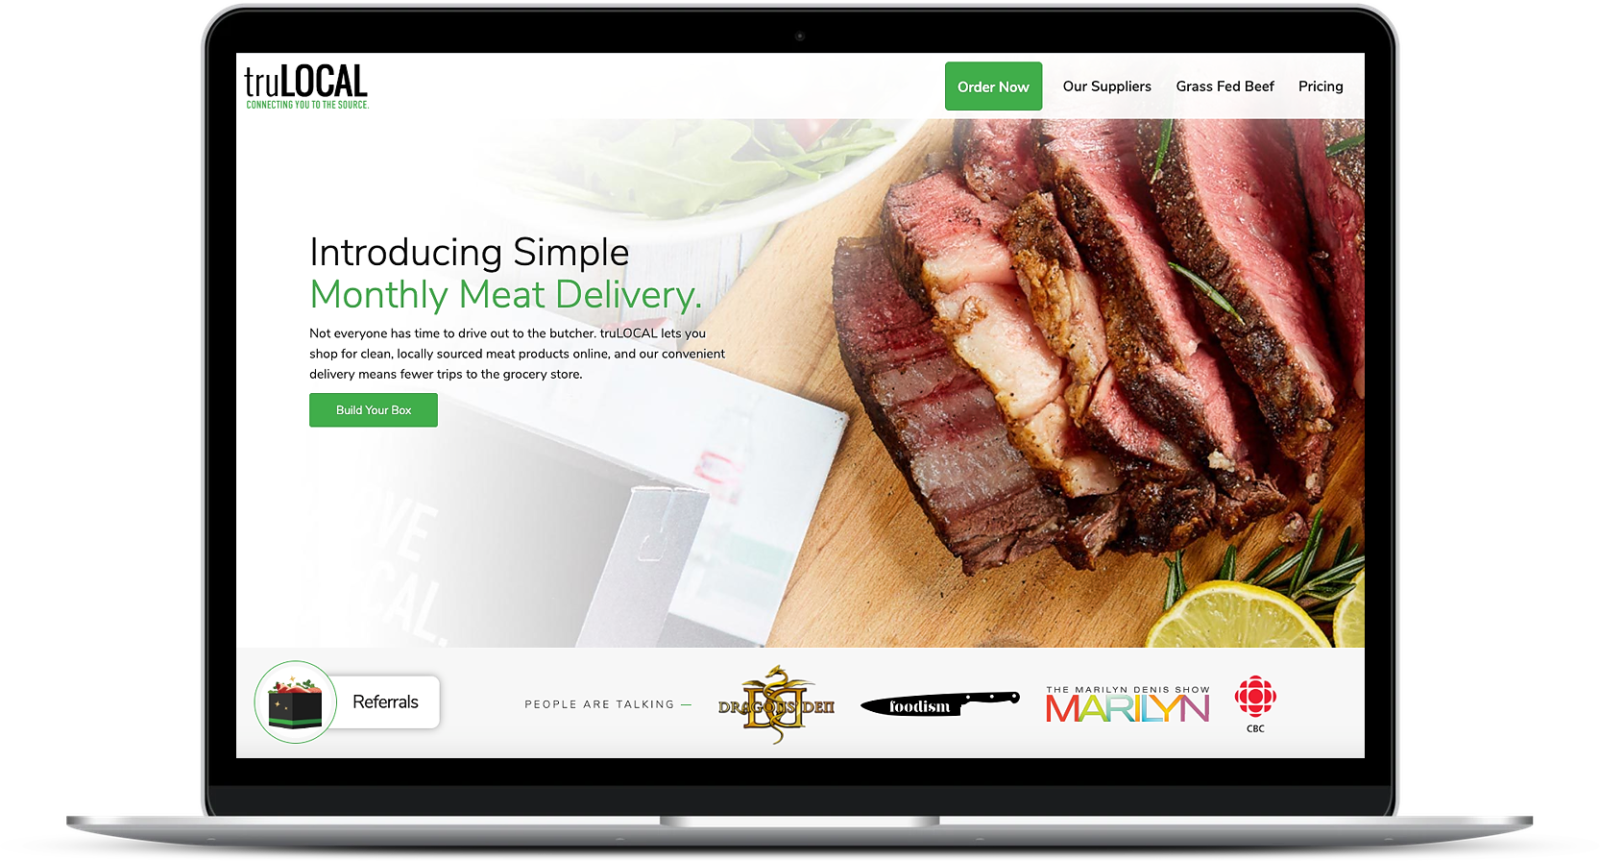 picture of tru local's meat delivery services online homepage